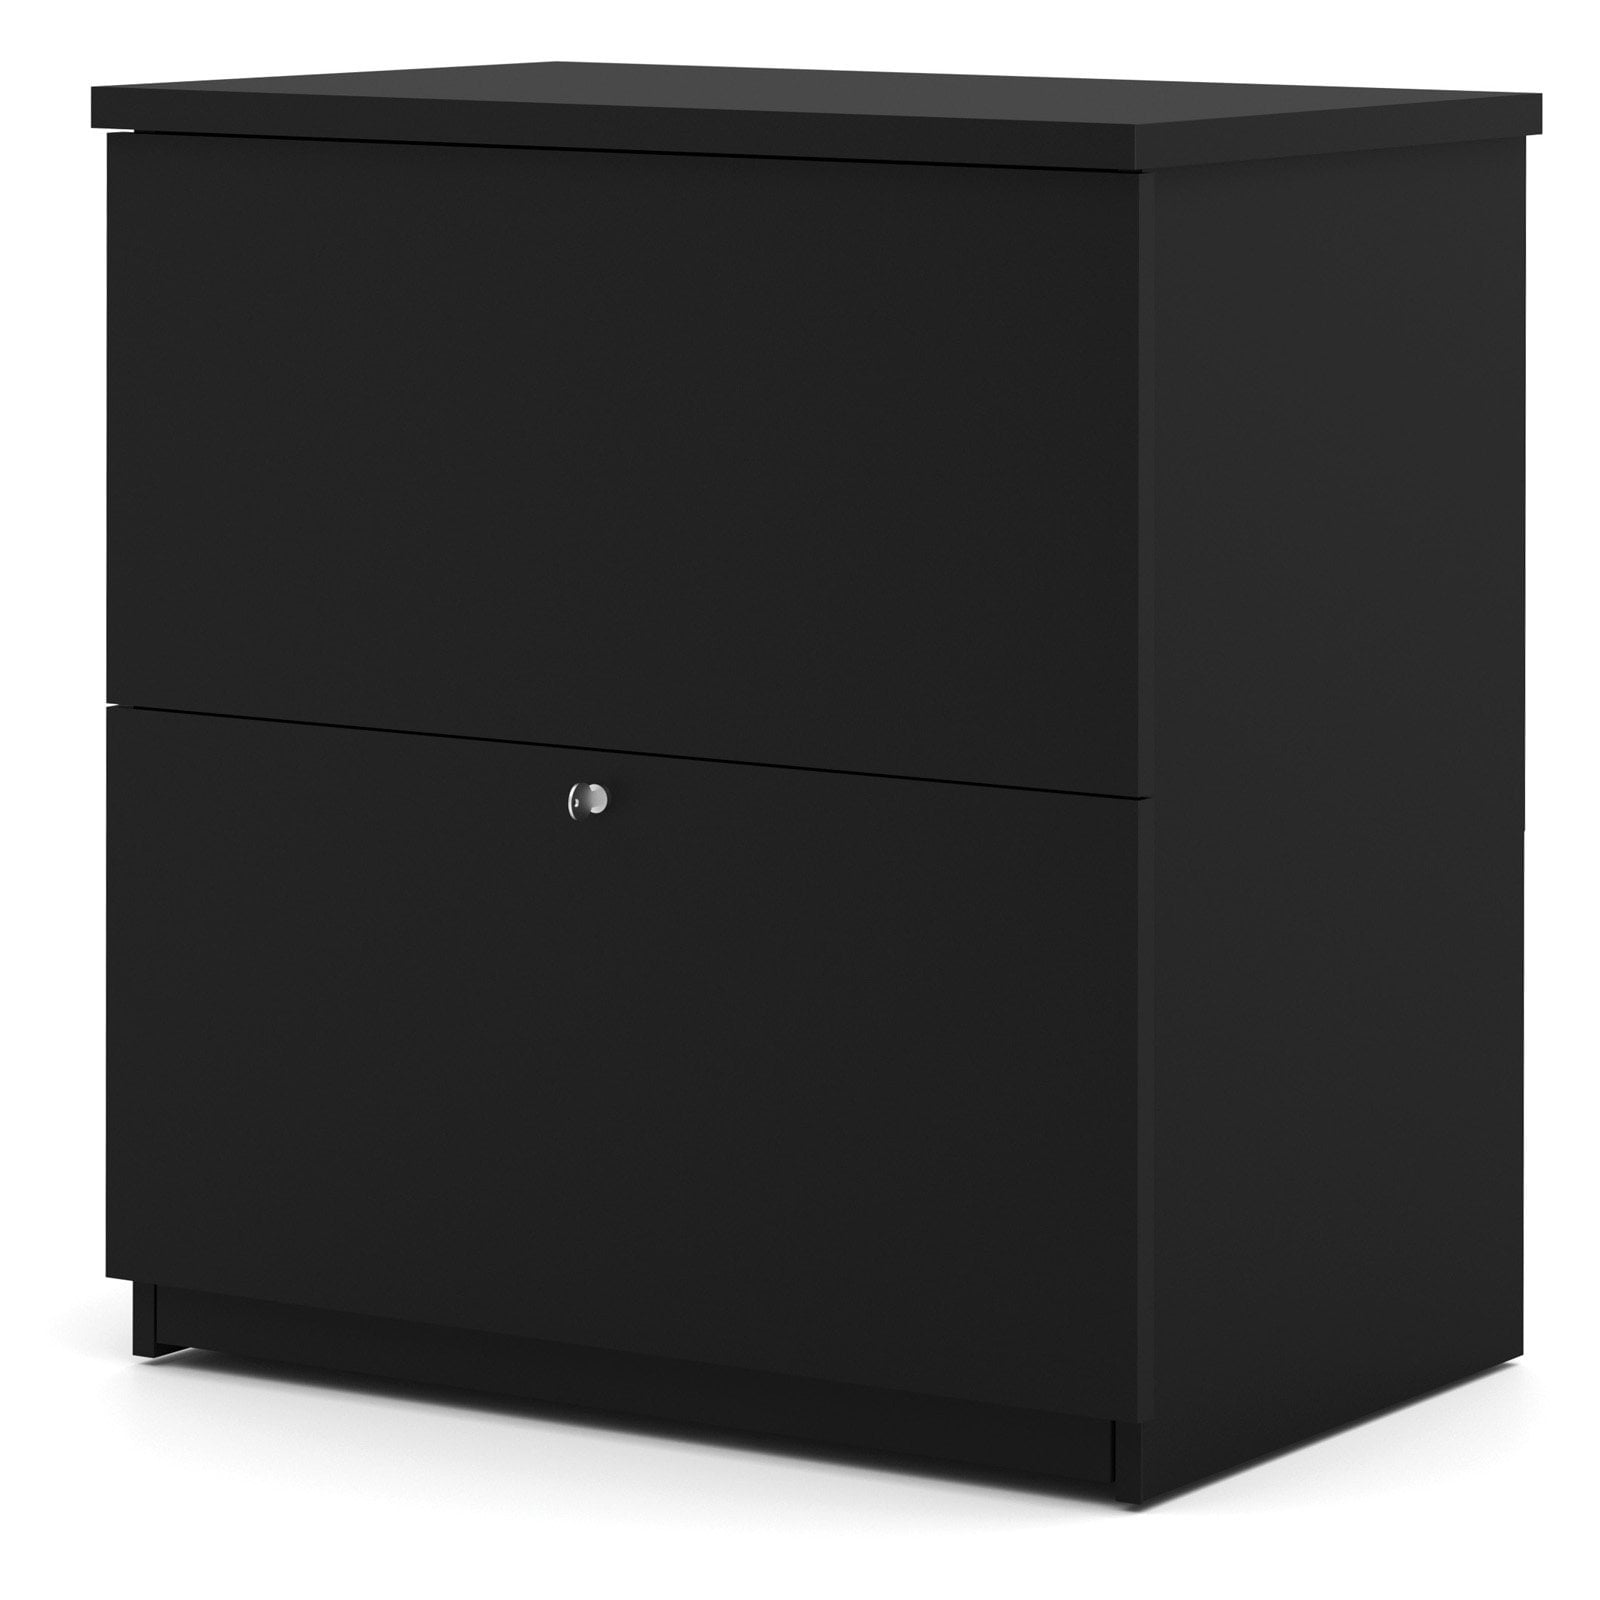 Bestar 2 Drawer Lateral Wood Lockable Filing Cabinet, Black by Bestar